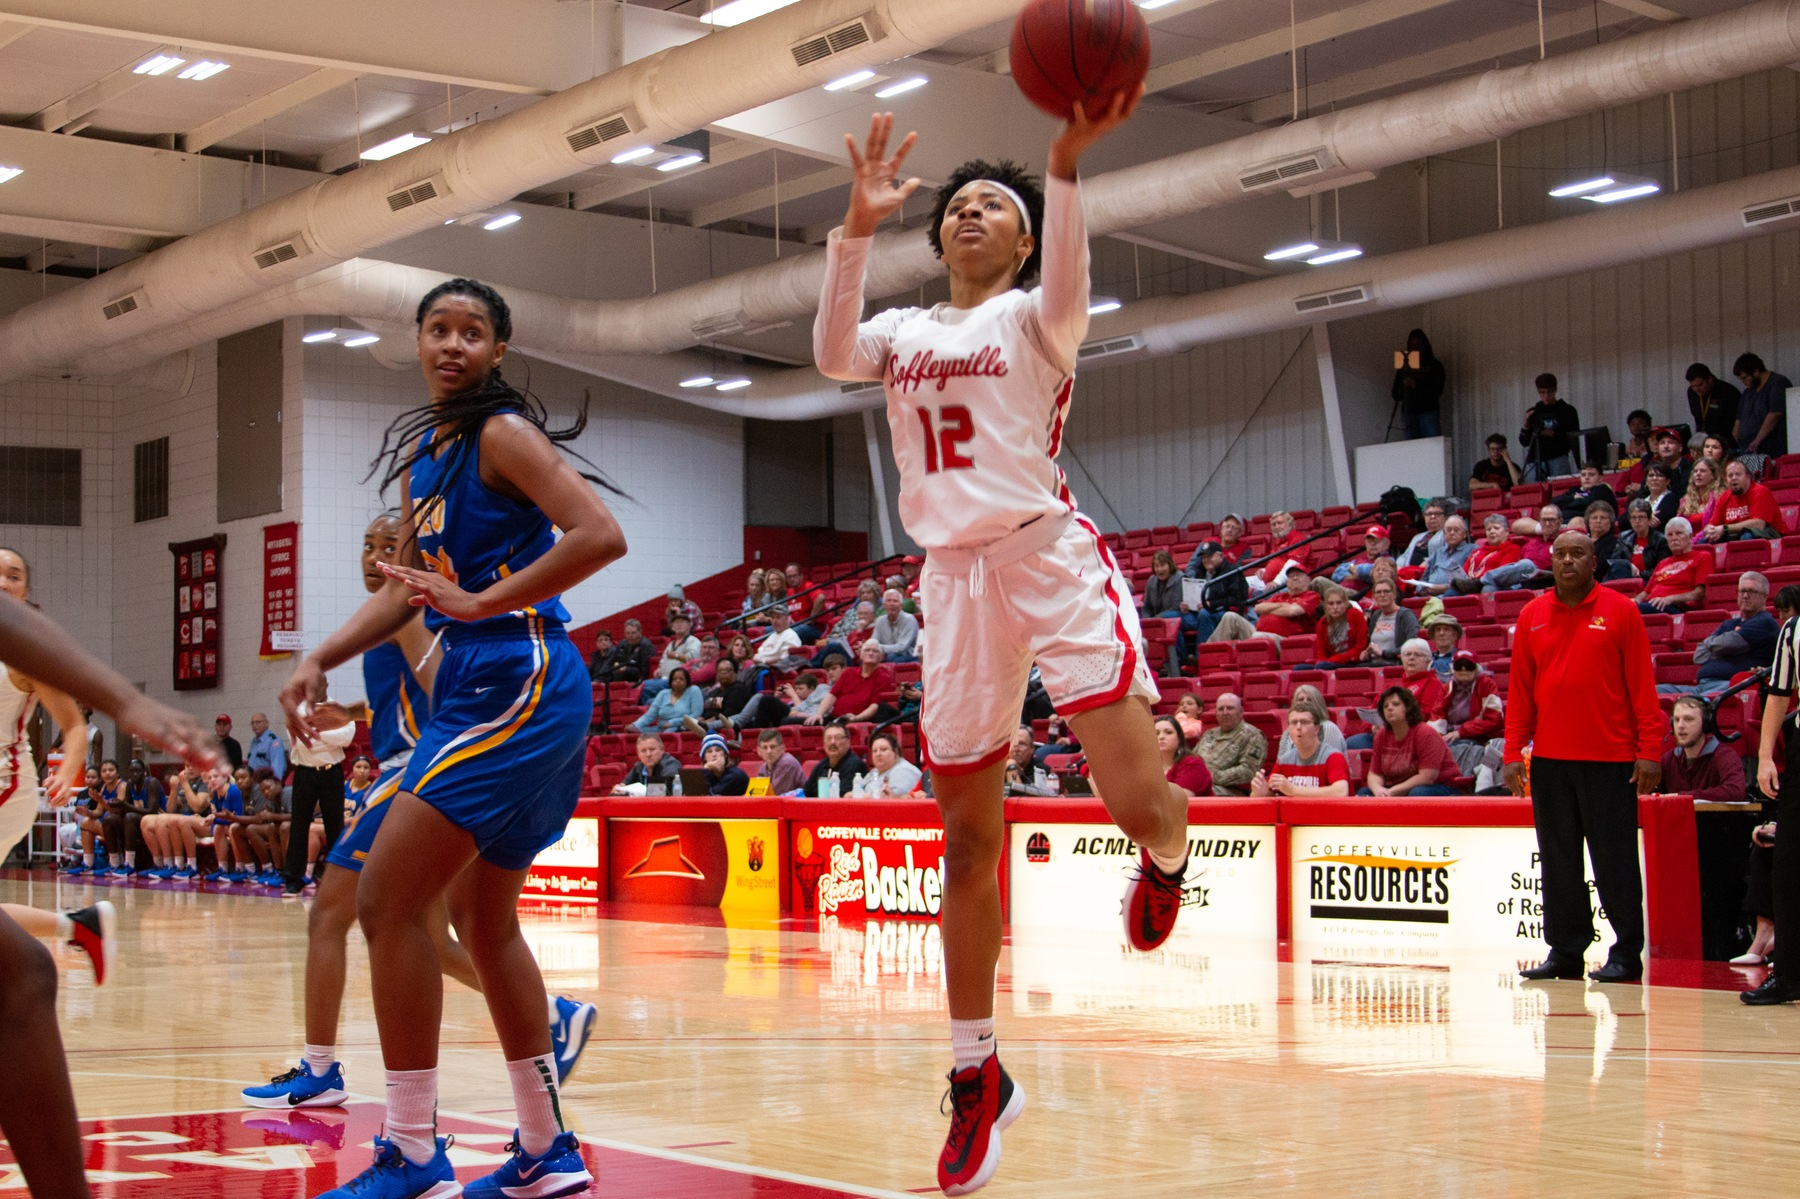 Strong Second Half Powers Red Raven Women's Basketball Past Northern OK-Tonkawa 84-57, Ravens Move to 9-0 on Season